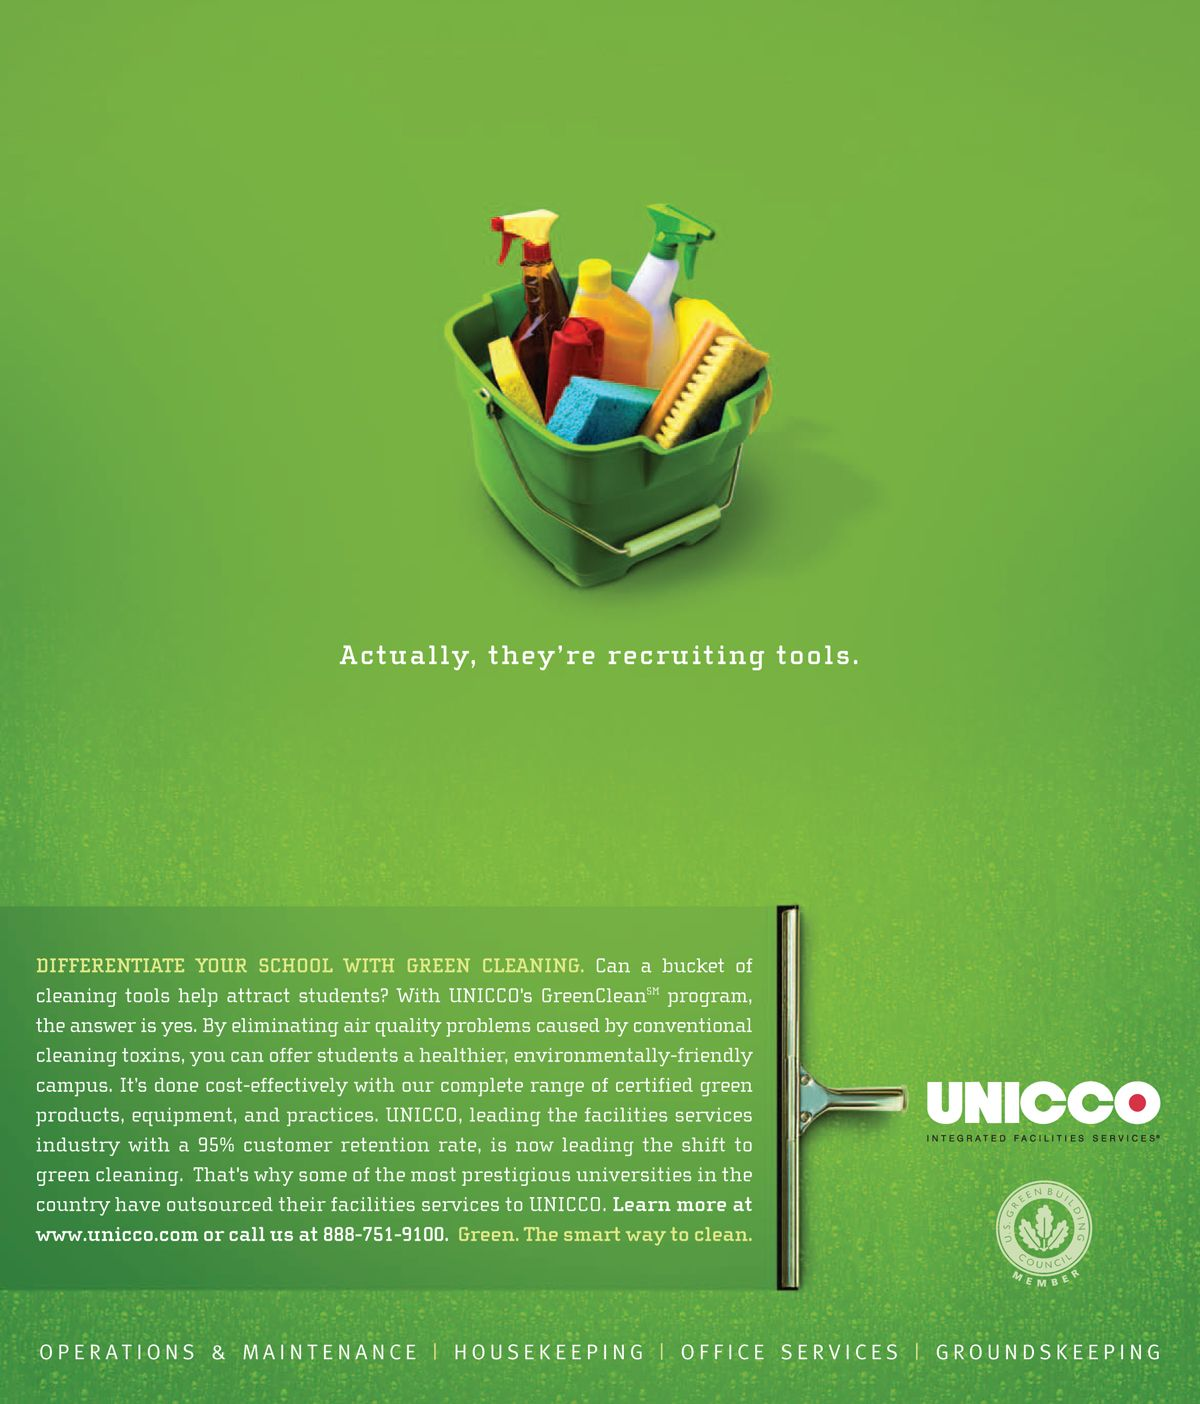 unicco green cleaning education ad brand stories unicco green cleaning education ad